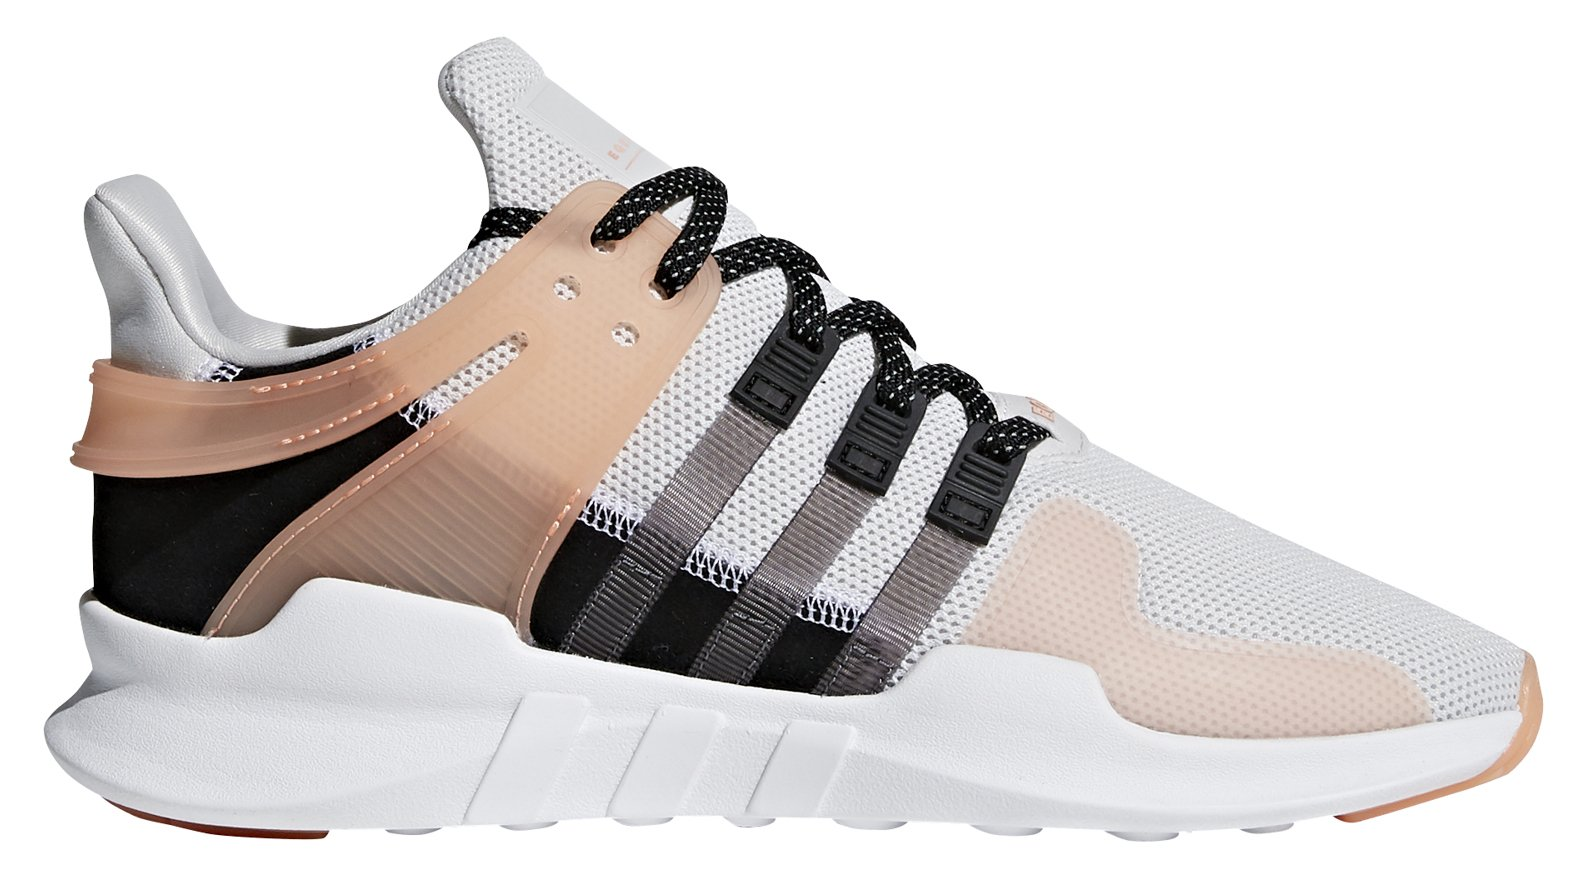 40a87c2792c3 Galleon - Adidas Women s EQT Support ADV Trainer Shoes (6.5